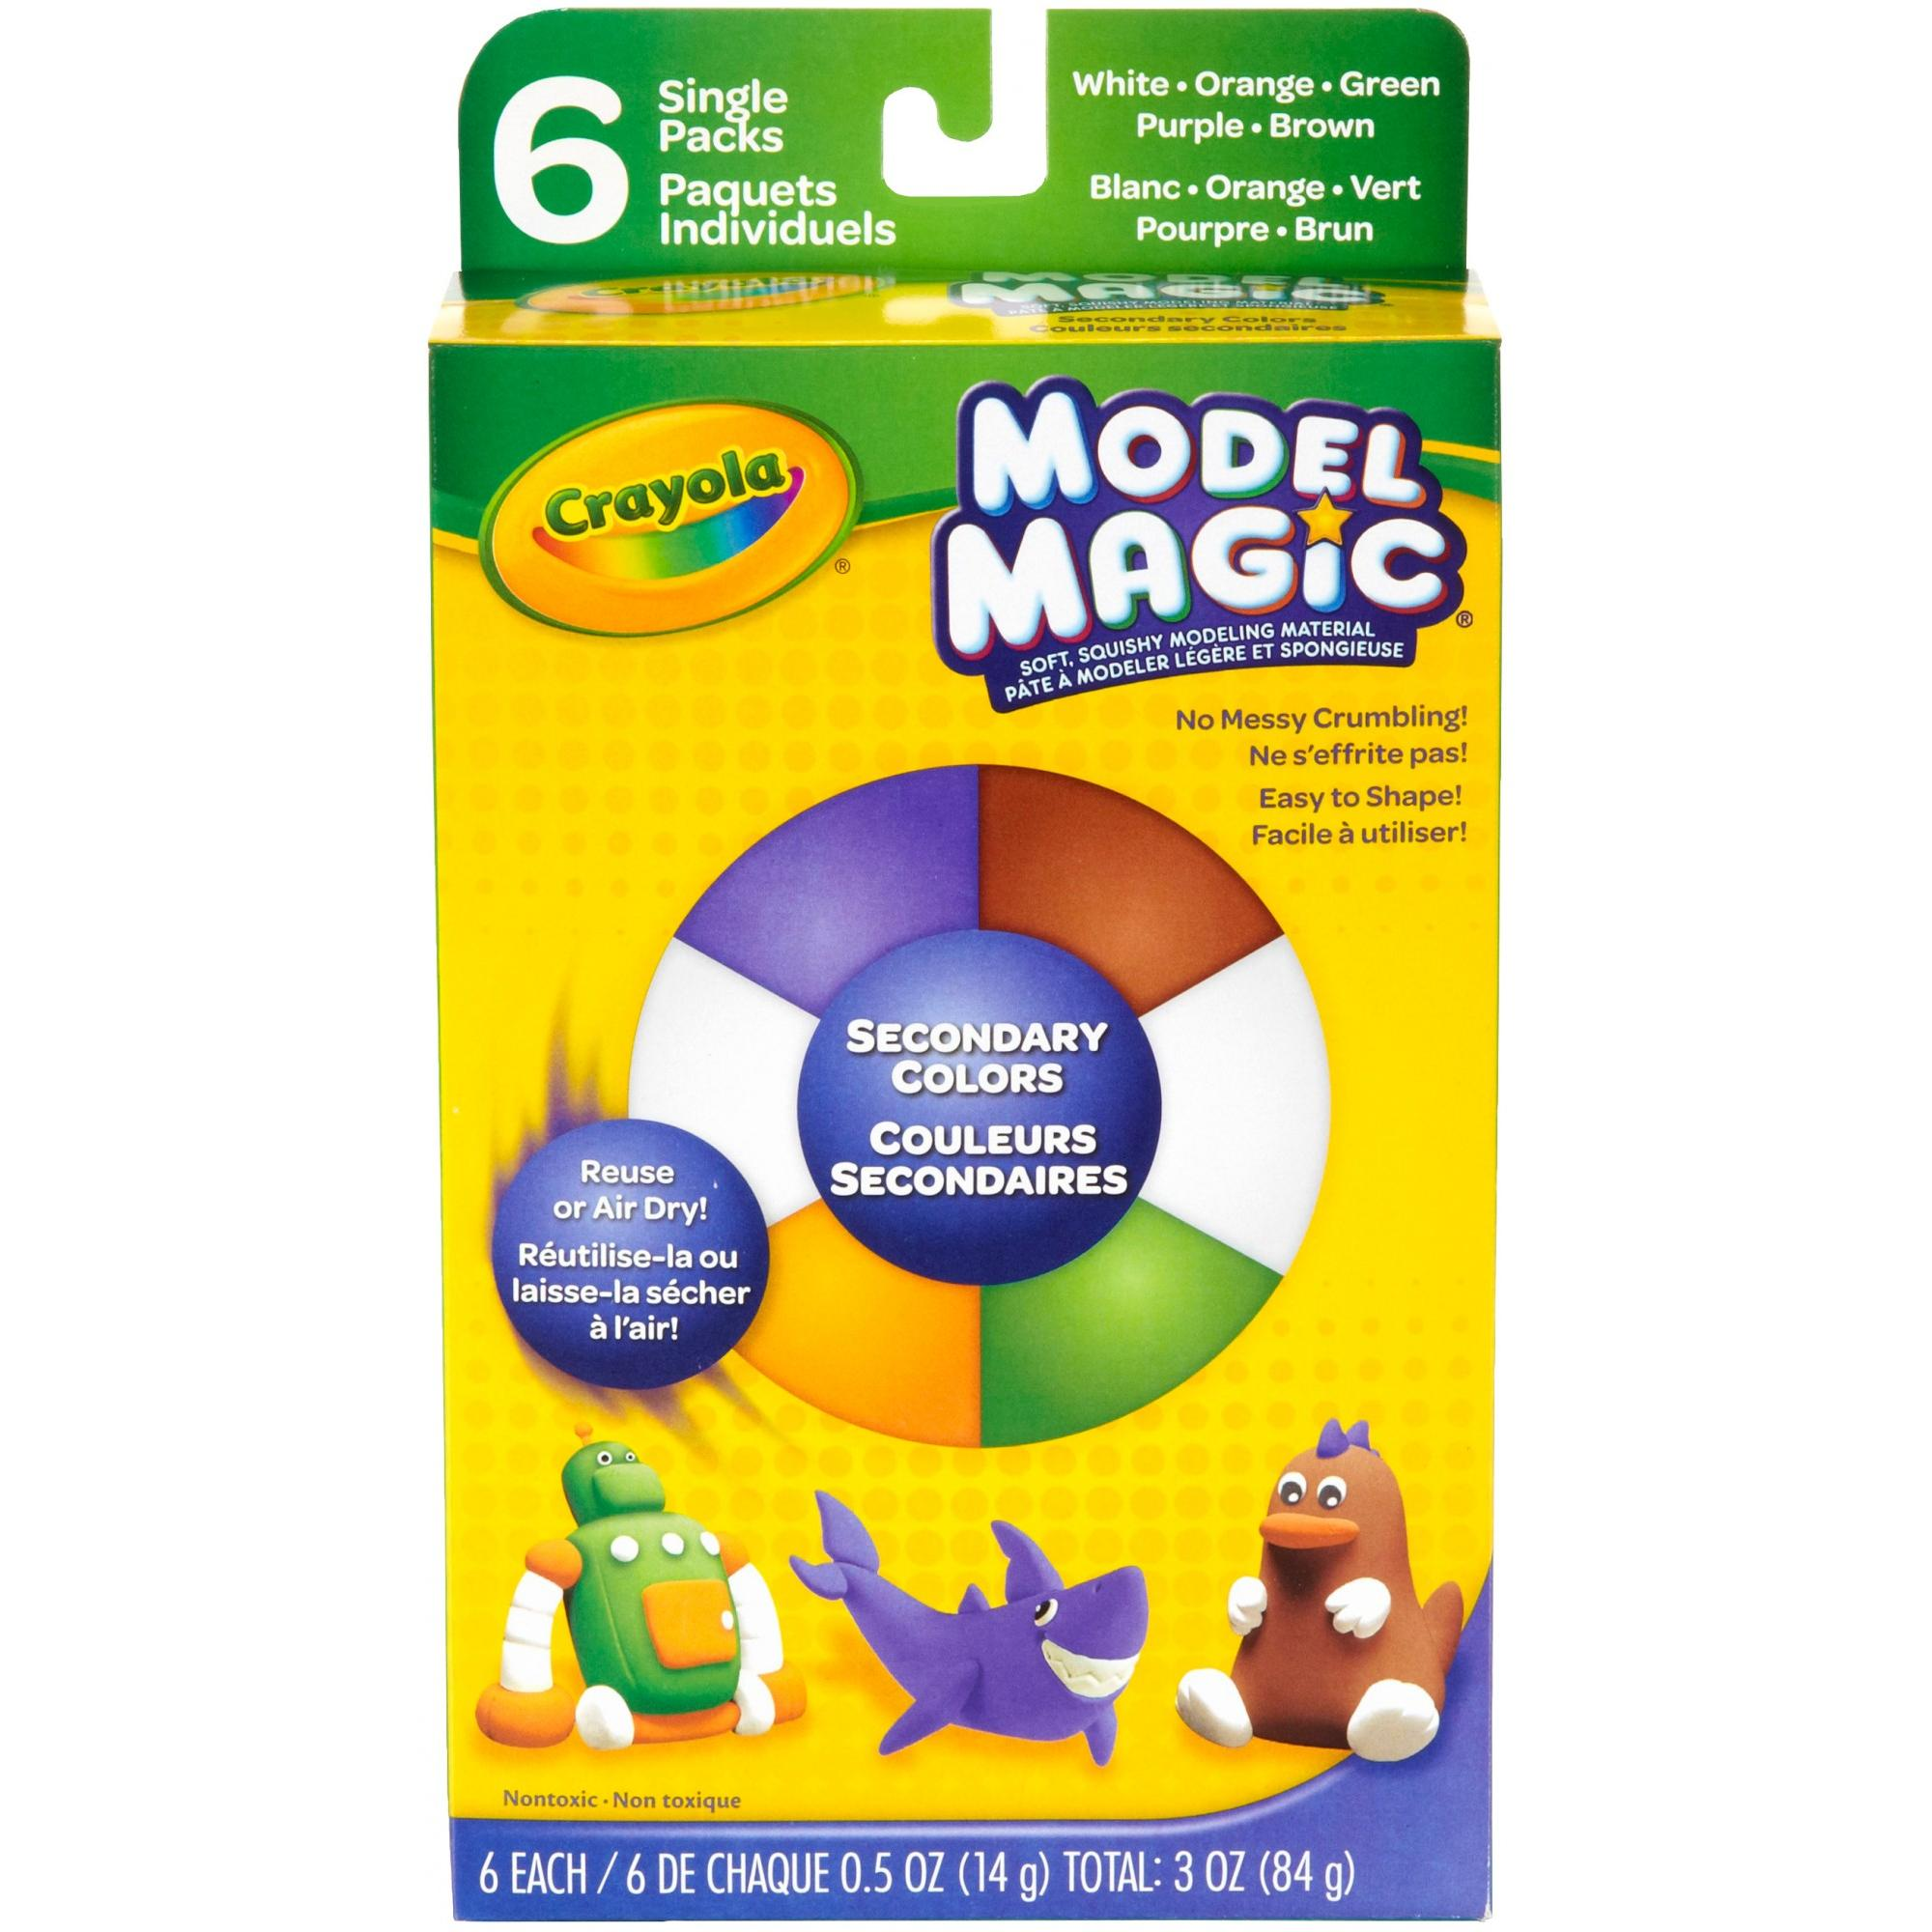 Crayola Model Magic, Secondary Colors, Clay Alternative for Kids, 3oz